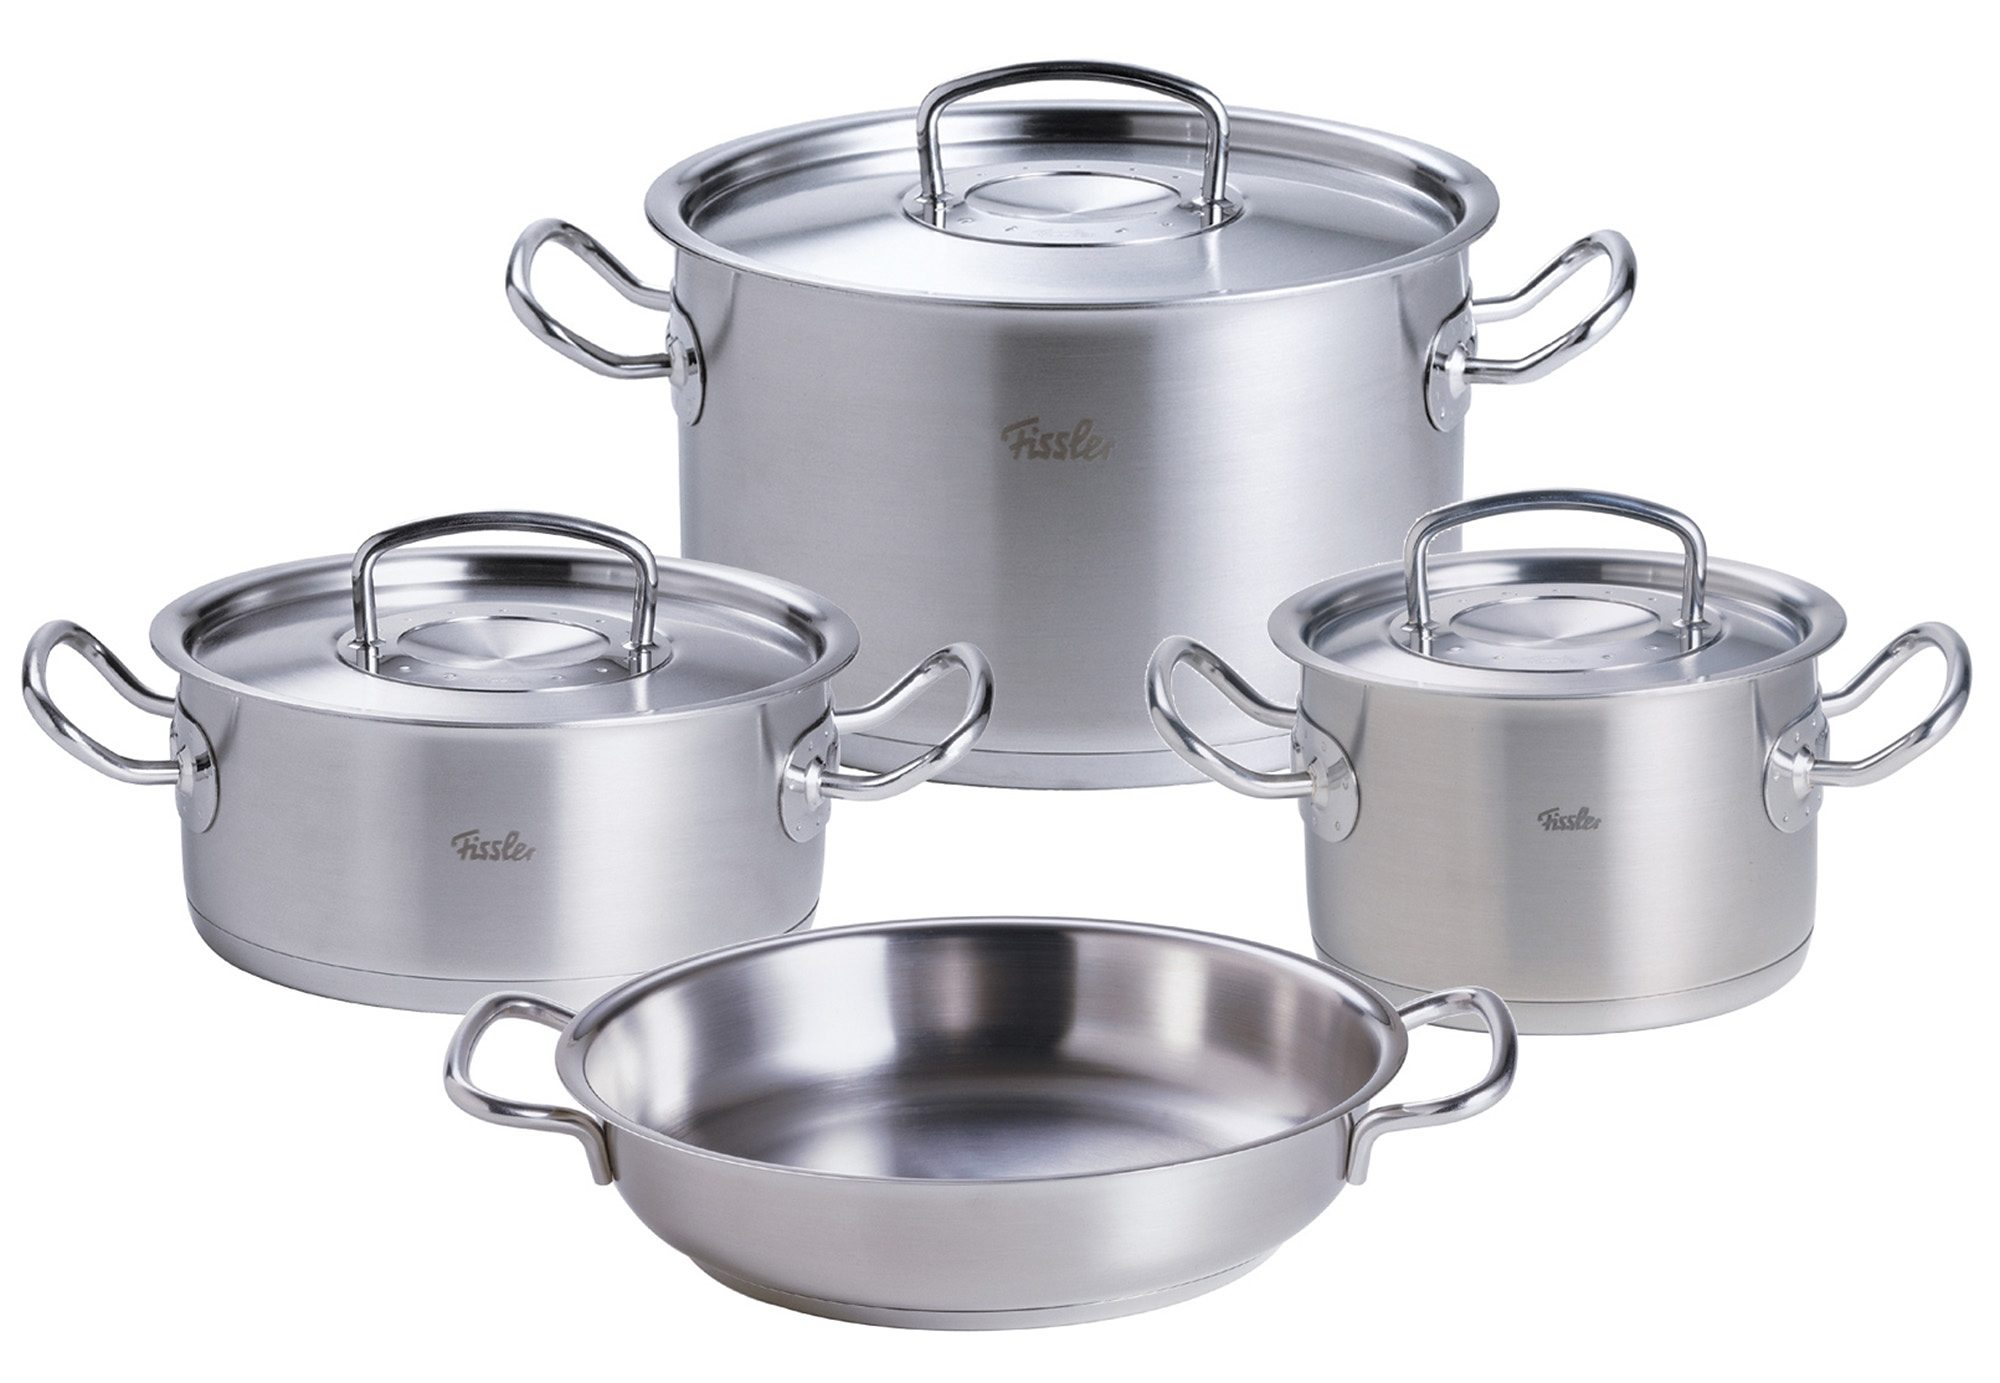 Kochtopf-Set, Edelstahl, »original-profi collection«, Fissler (7tlg.)